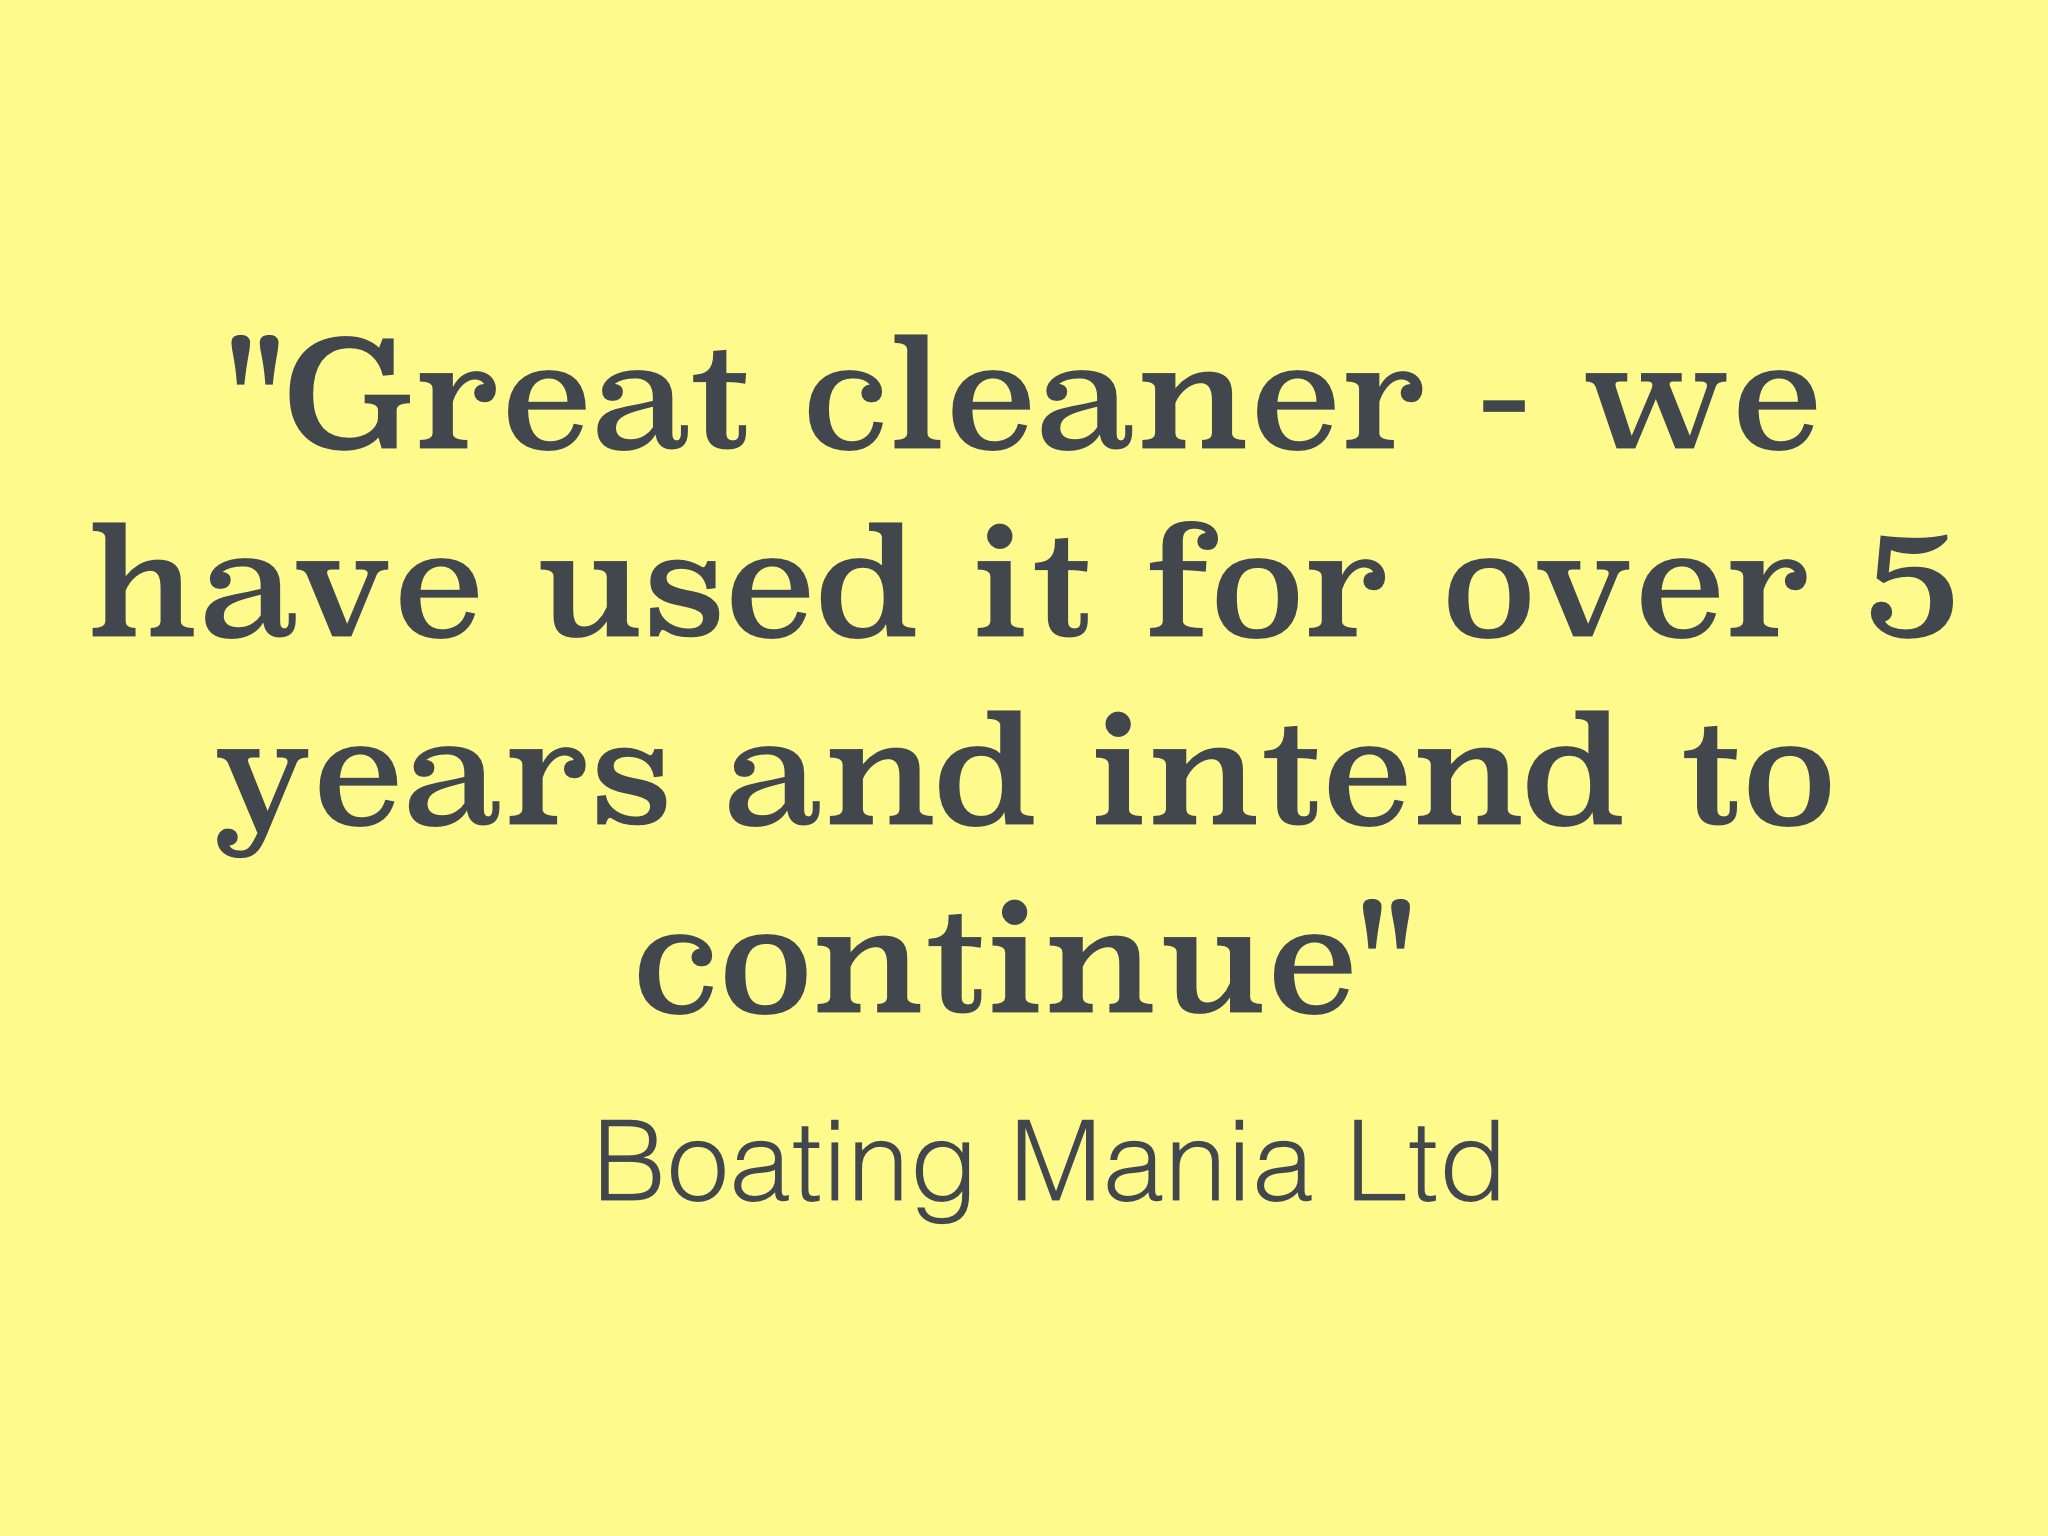 Brill cleaner testimonial